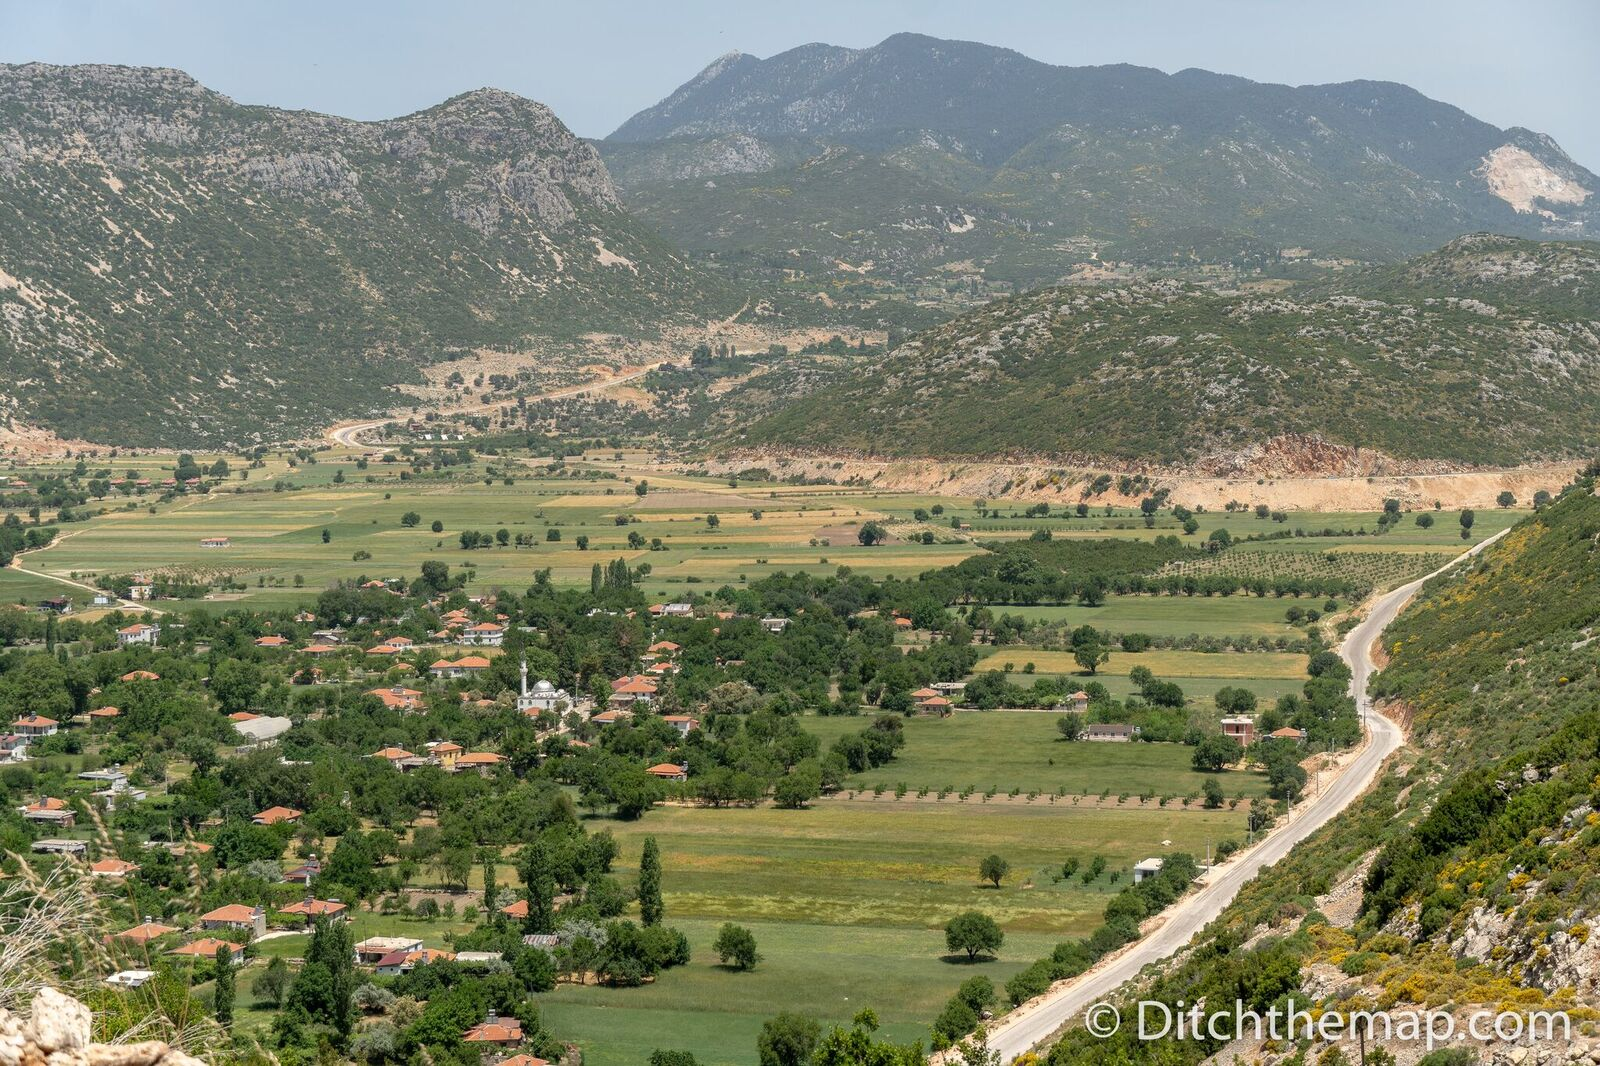 A view of the village of Bezirgan from the Lycian Way